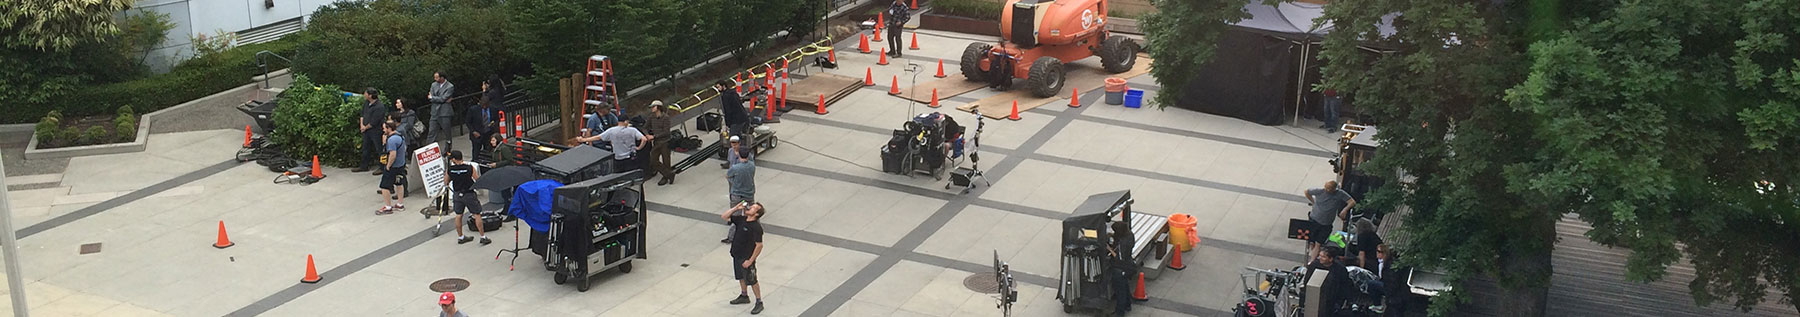 Filming in Civic Plaza